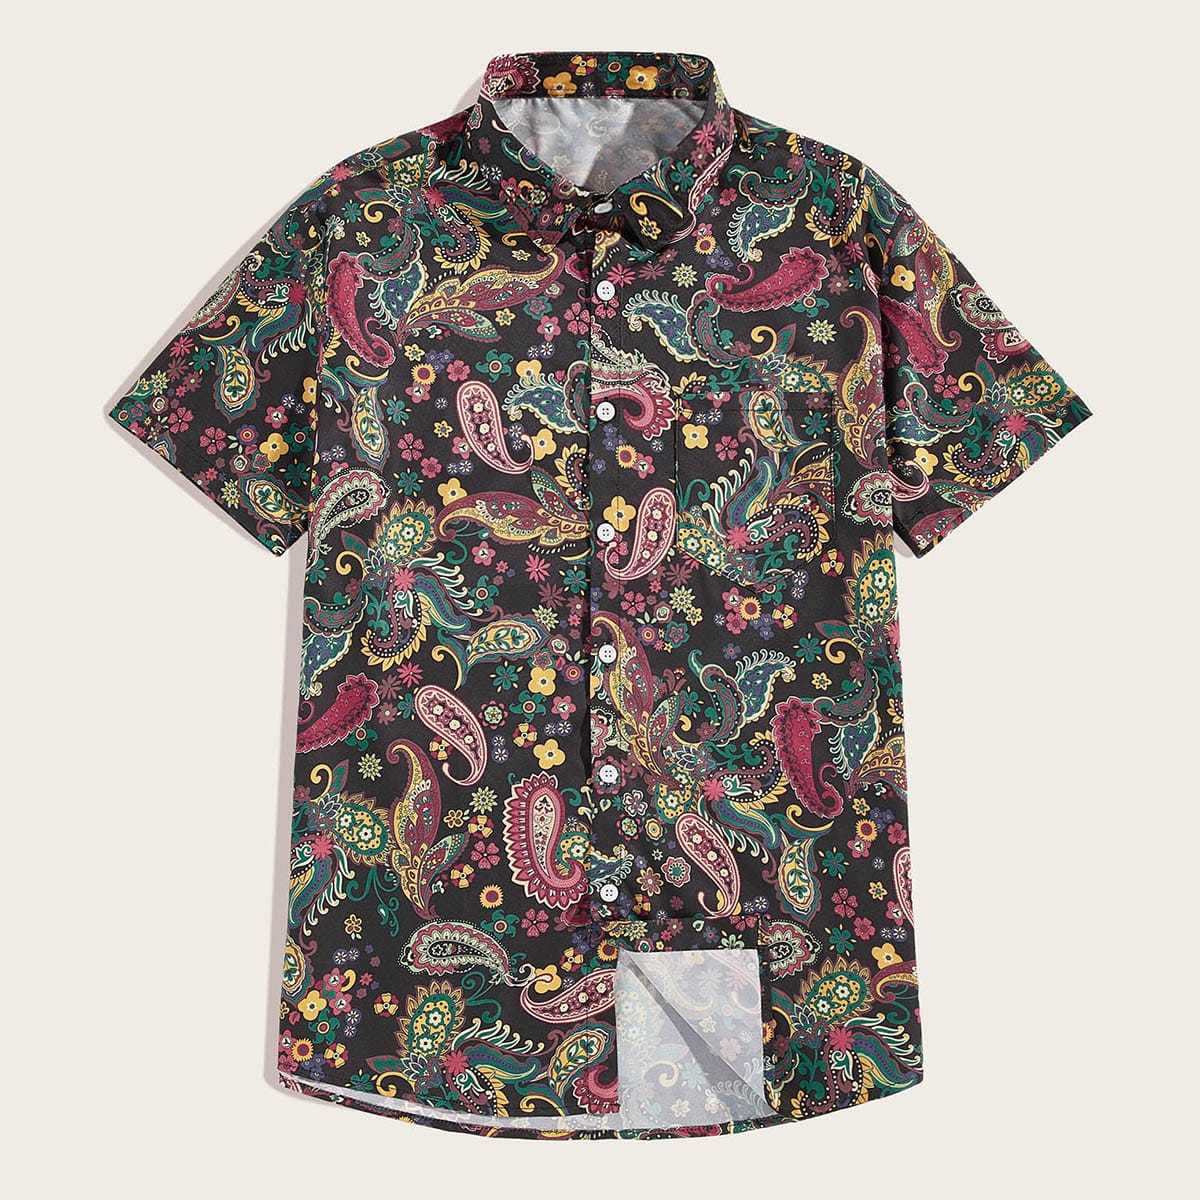 Guys Tribal And Floral Print Shirt in Multicolor by ROMWE on GOOFASH